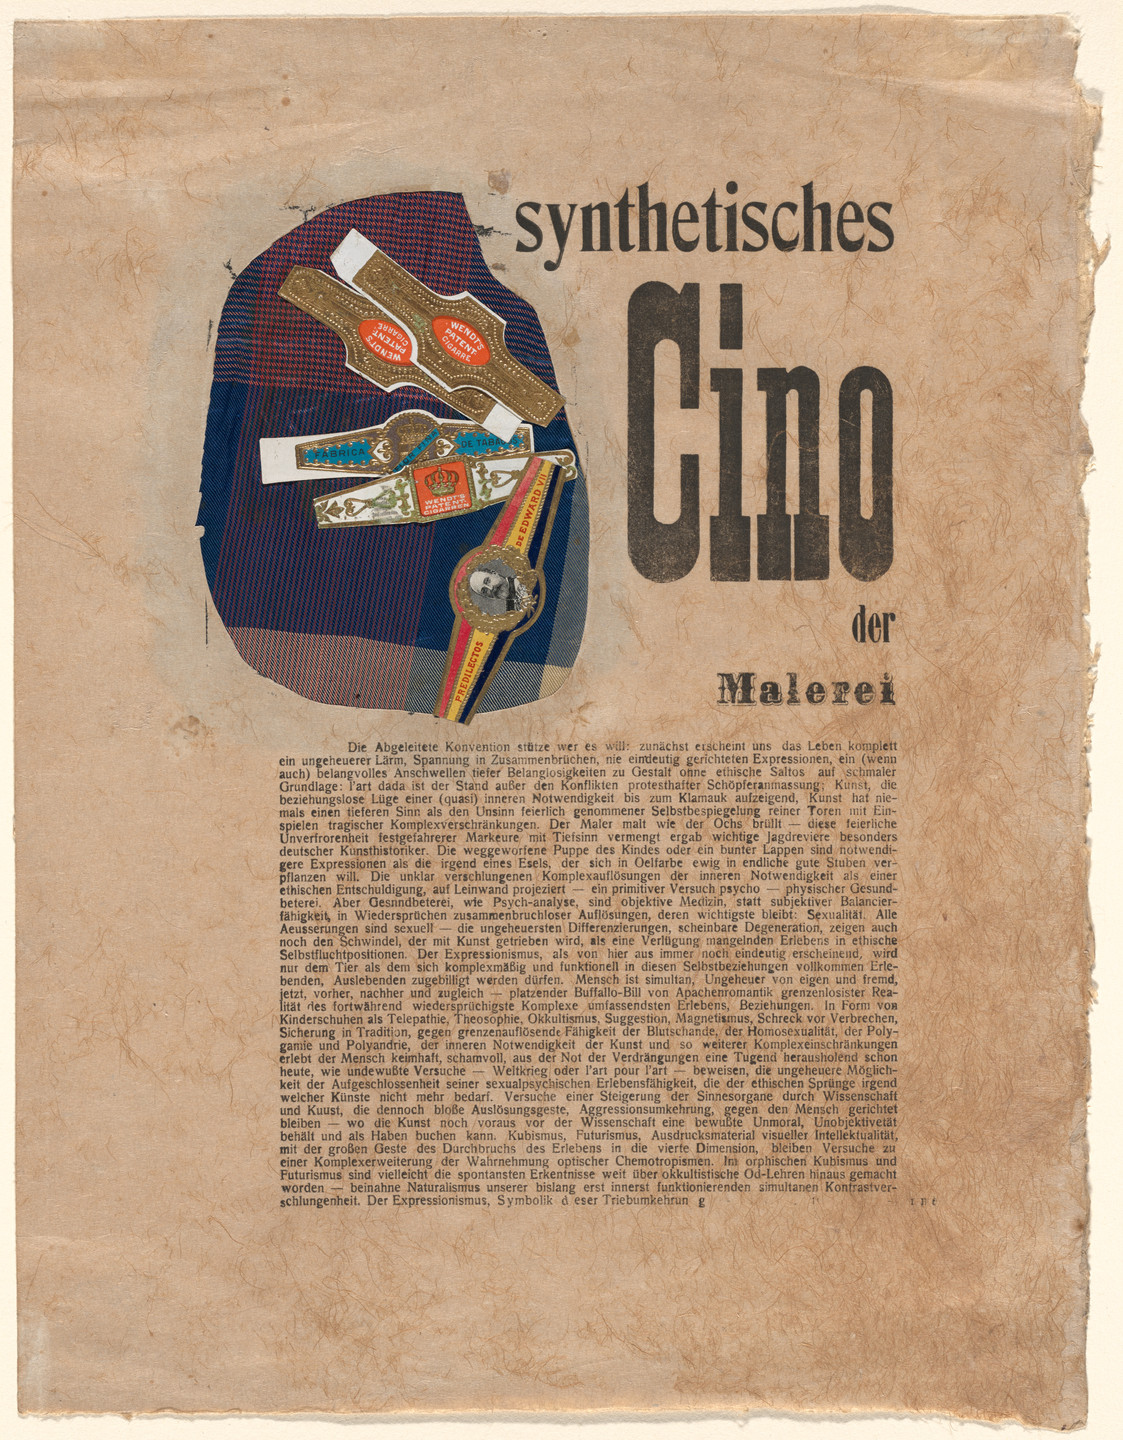 Raoul Hausmann. Synthetic Cinema of Painting (Synthetisches Cino der Malerei). c. 1918–19